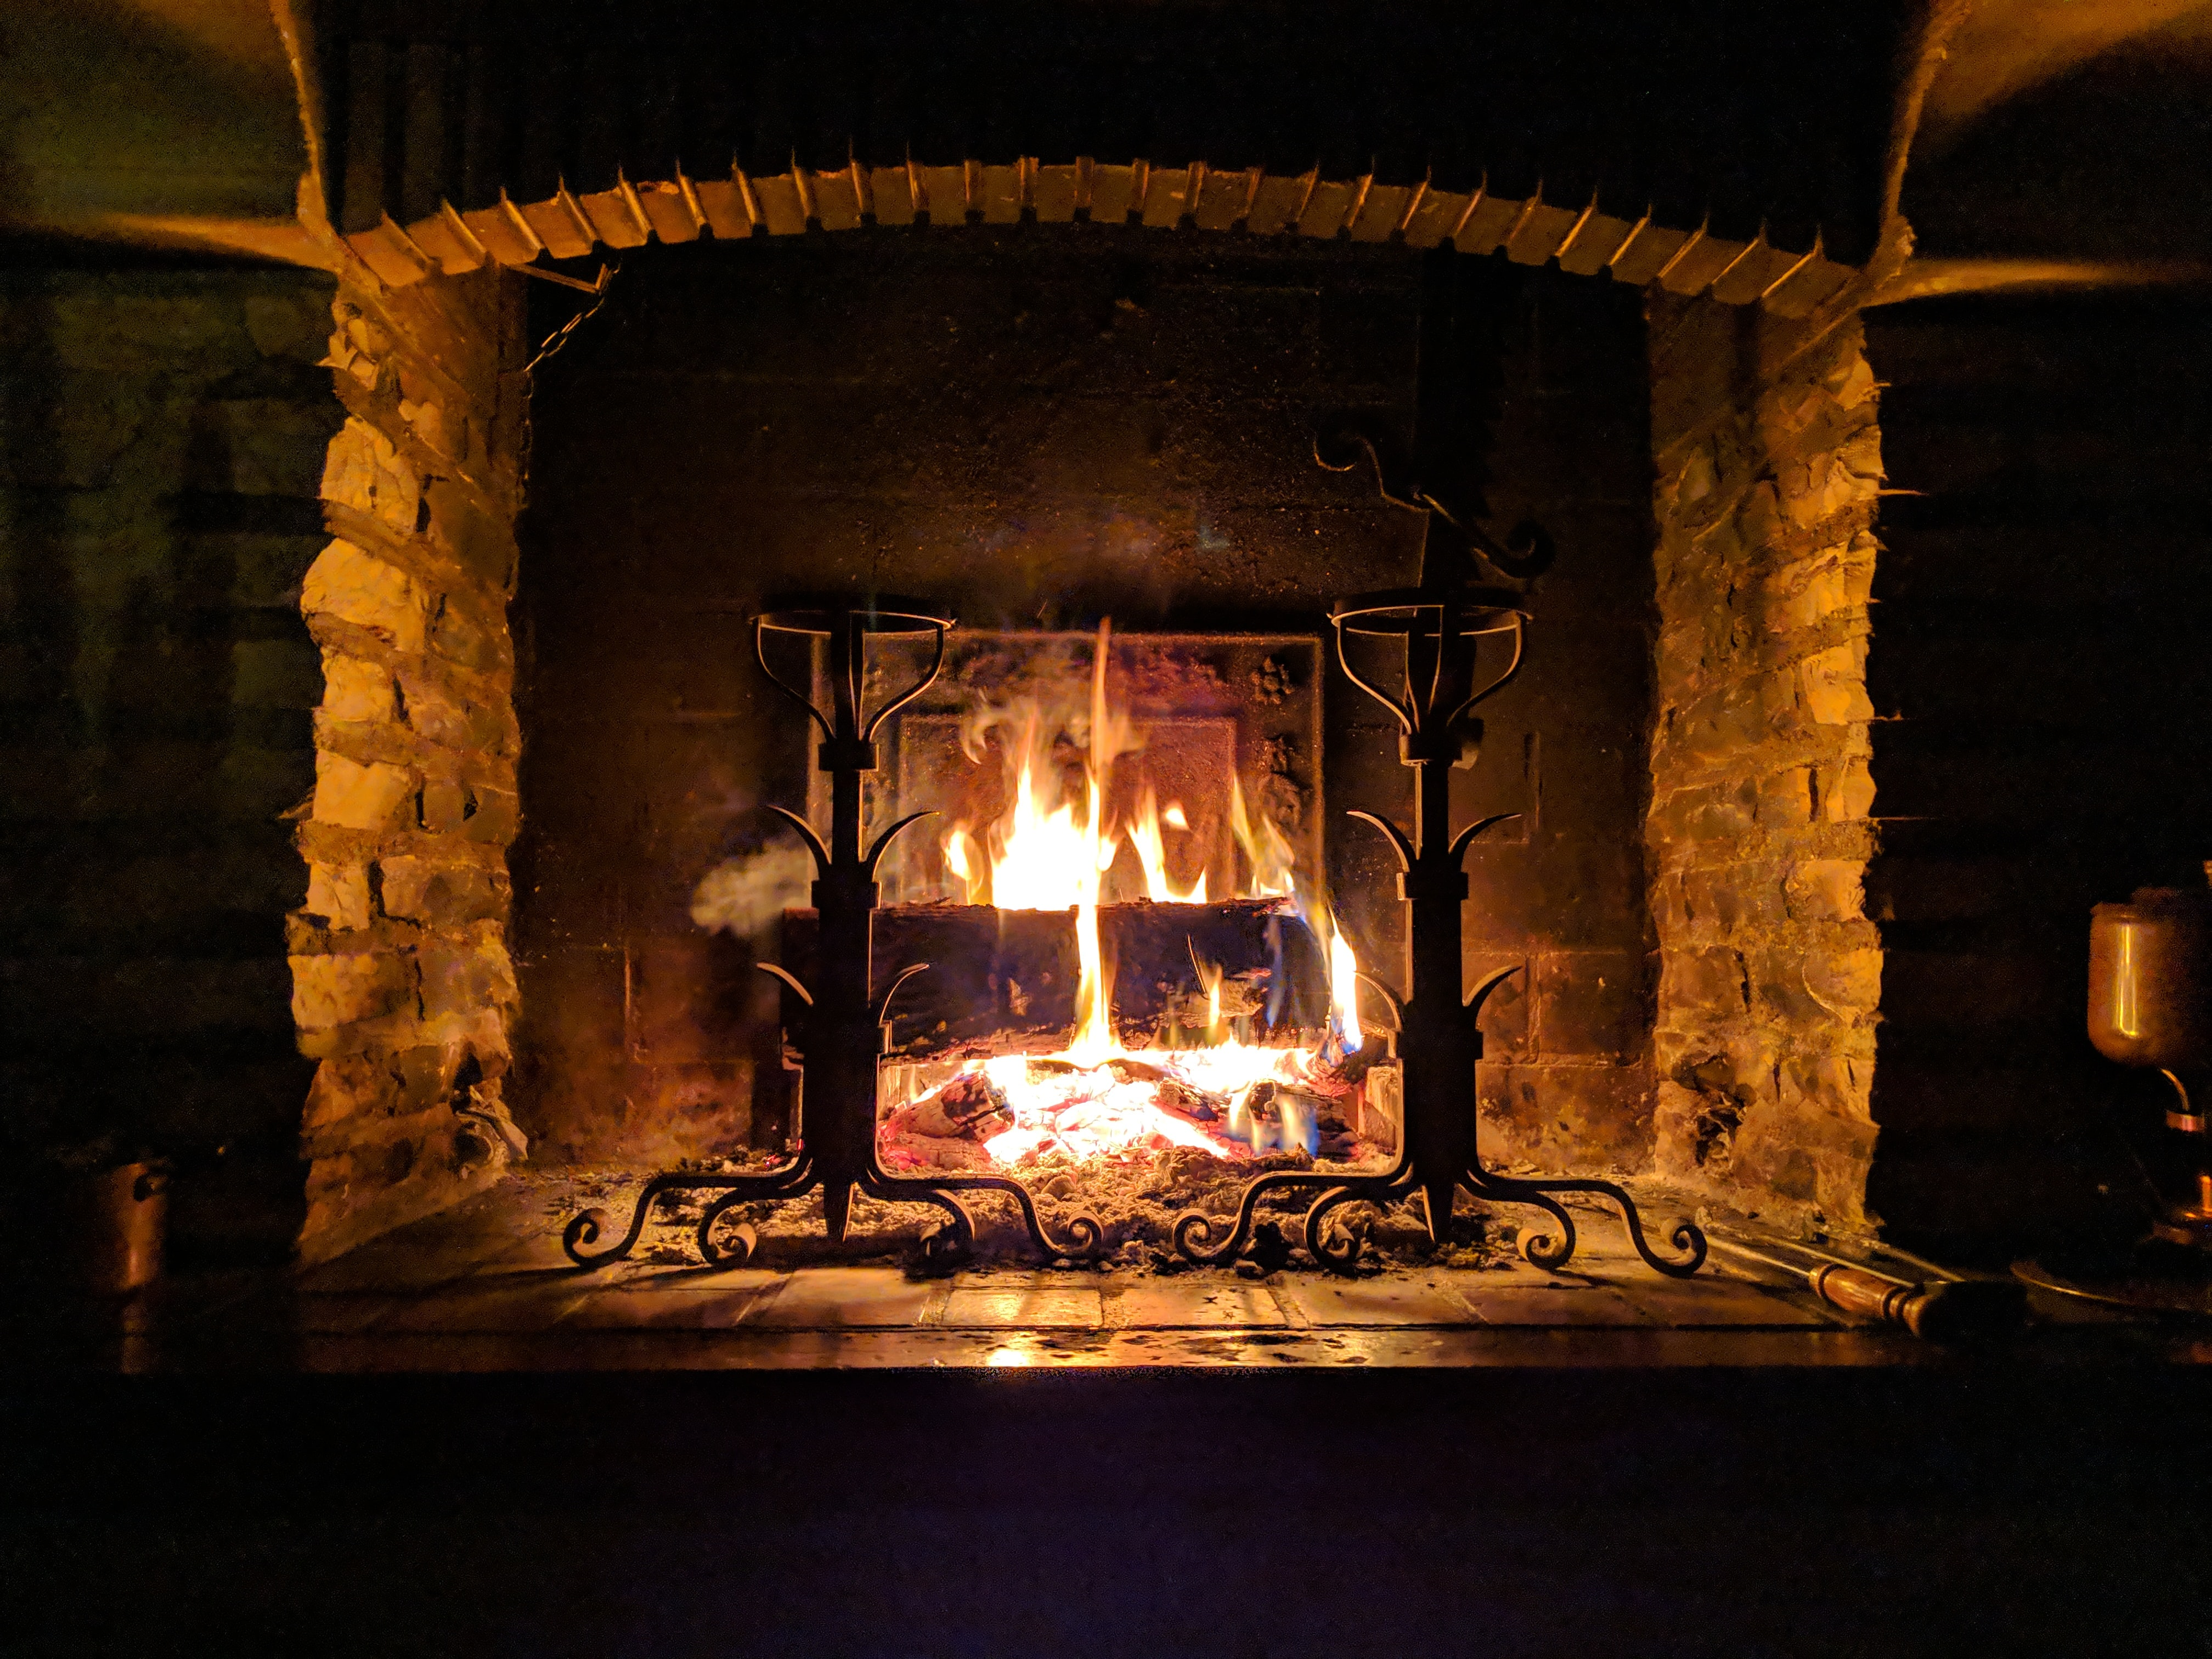 fireplace pictures download free images on unsplash rh unsplash com picture of fireplace on tv picture of fireplace insert